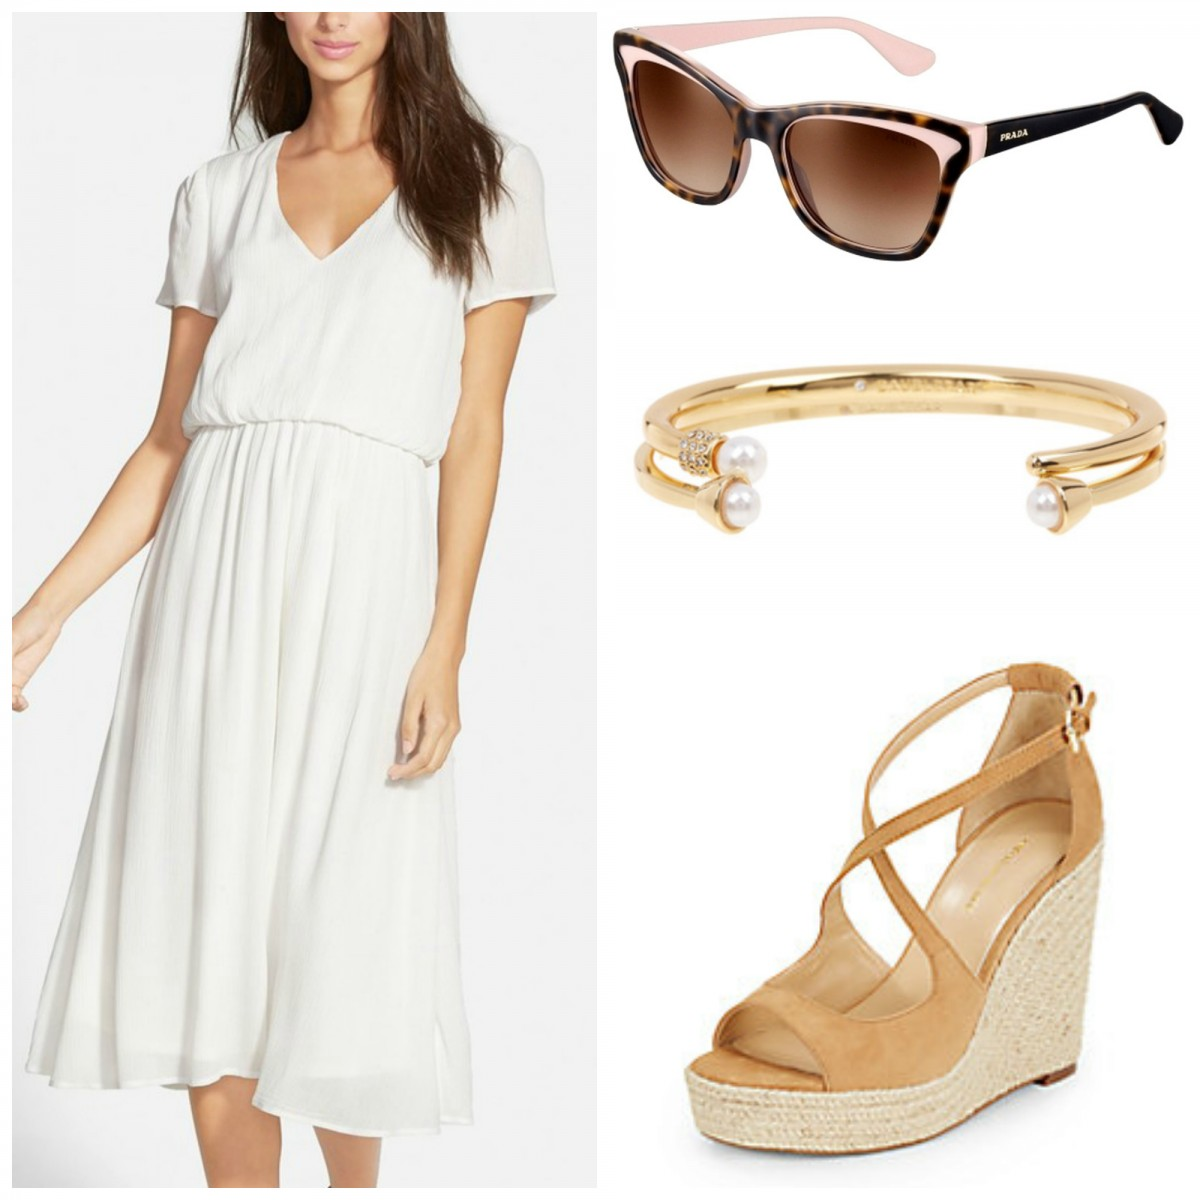 Outfit Inspiration Work and Play Her Heartland Soul